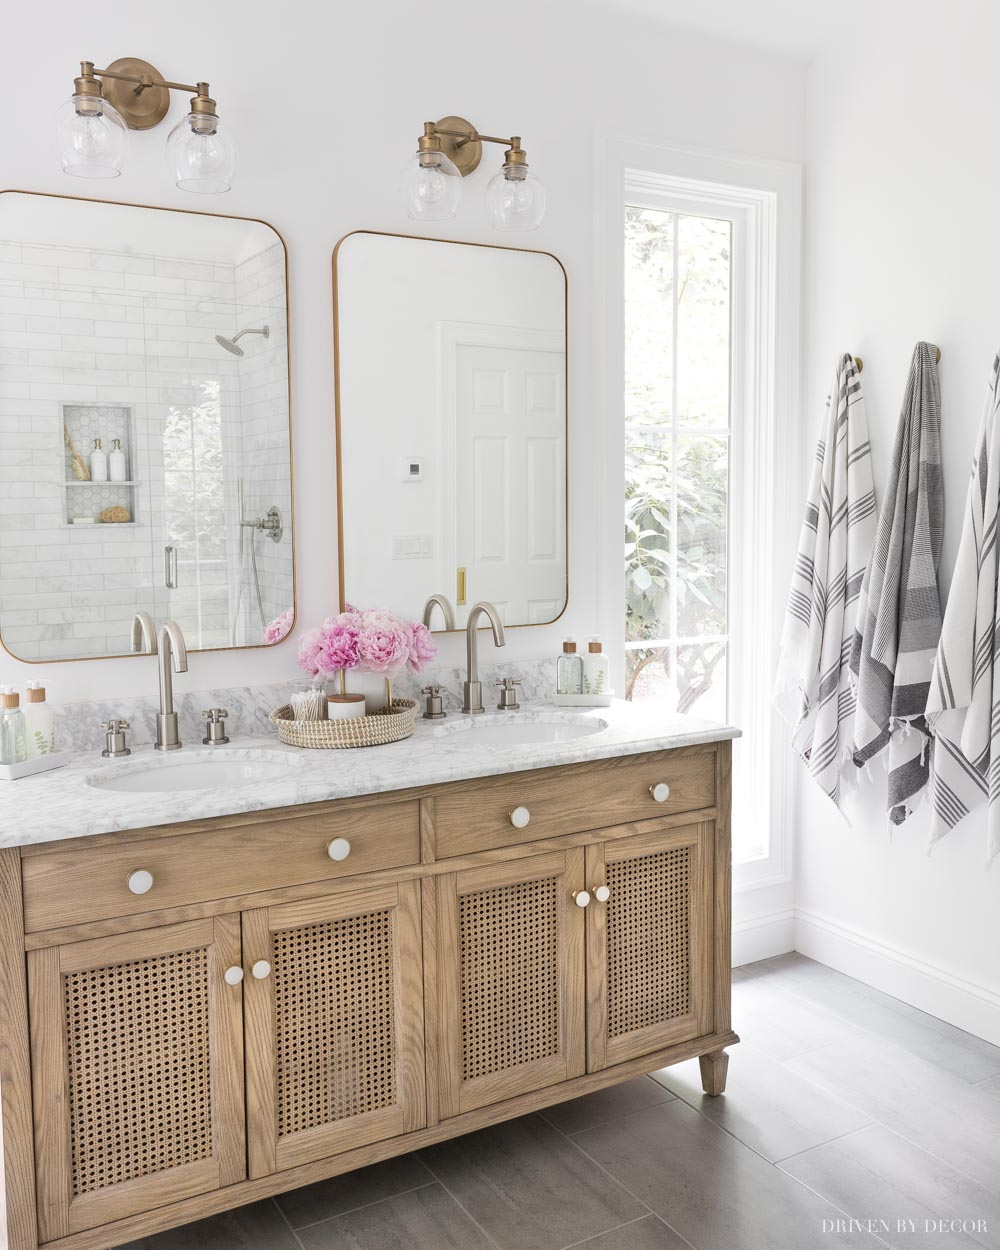 Love the mixed metals in this bathroom design! Brushed nickel faucets and brass / gold mirrors and lights